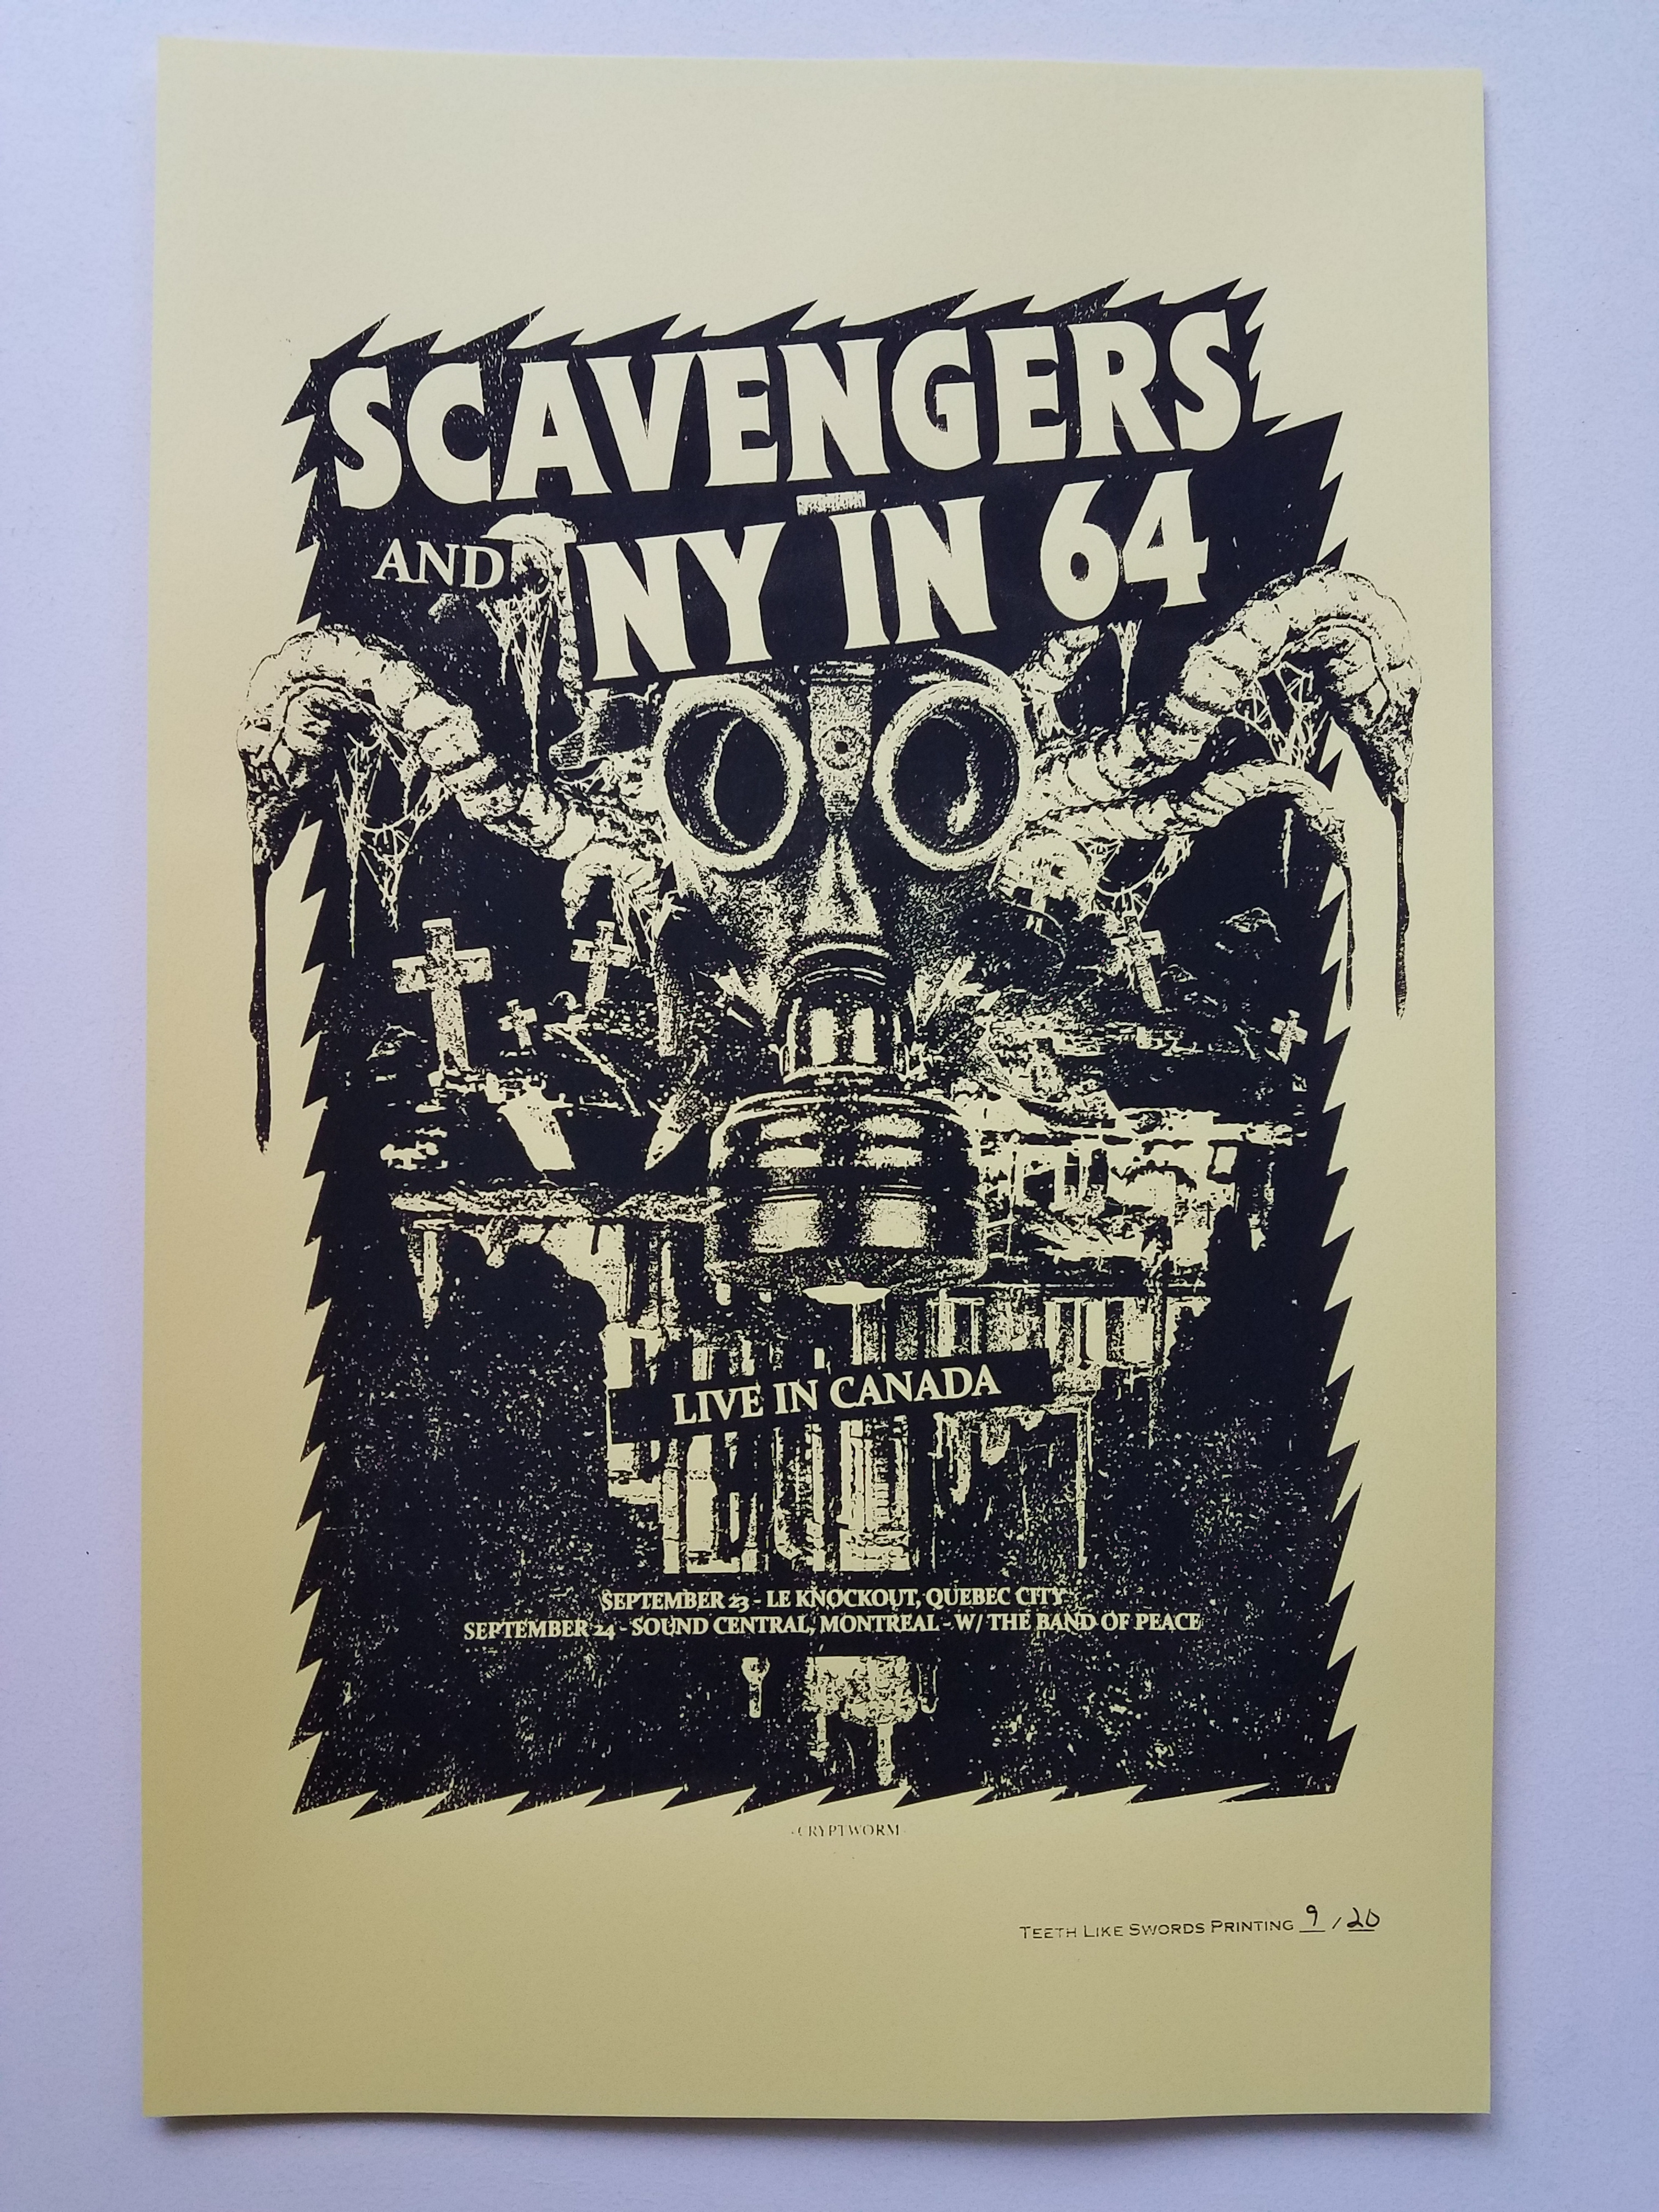 Scavengers & NY in 64 Canadian Show Poster